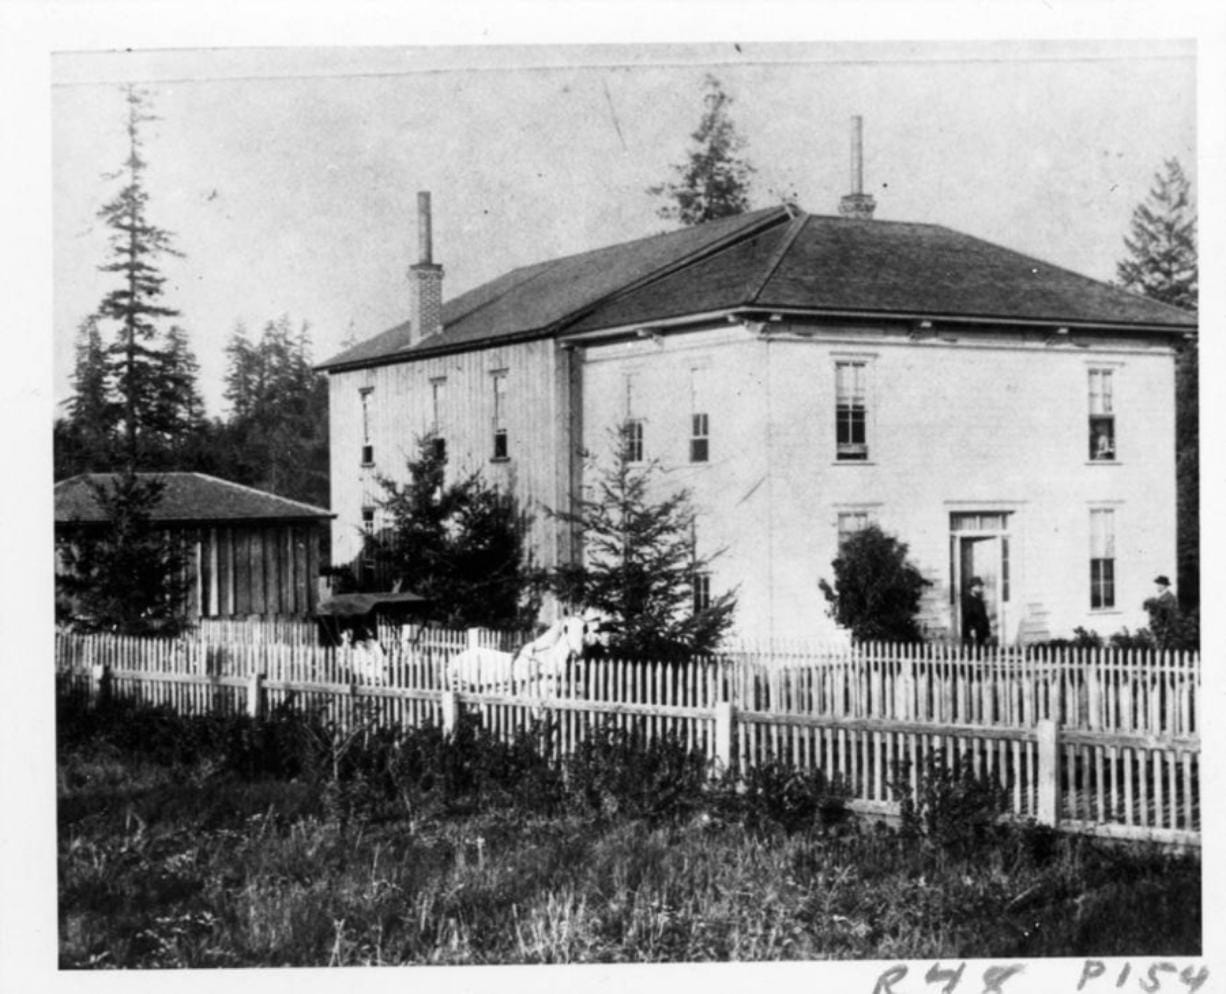 This 1892 photo may be of the first building for the Washington School for Defective Youth and matches the description as part farmhouse in reports. By 1892, the Legislature funded a second, more suitable brick building. Despite its odious name, concerns for the disabled reach back into Washington's territorial days. Several early attempts failed. Then in 1886, the territorial legislature approved funding for a state school to educate the disabled and located it in Vancouver. The photo places the school at Fourth Plain (then a general locality, not a street) and Burnt Bridge Creek.